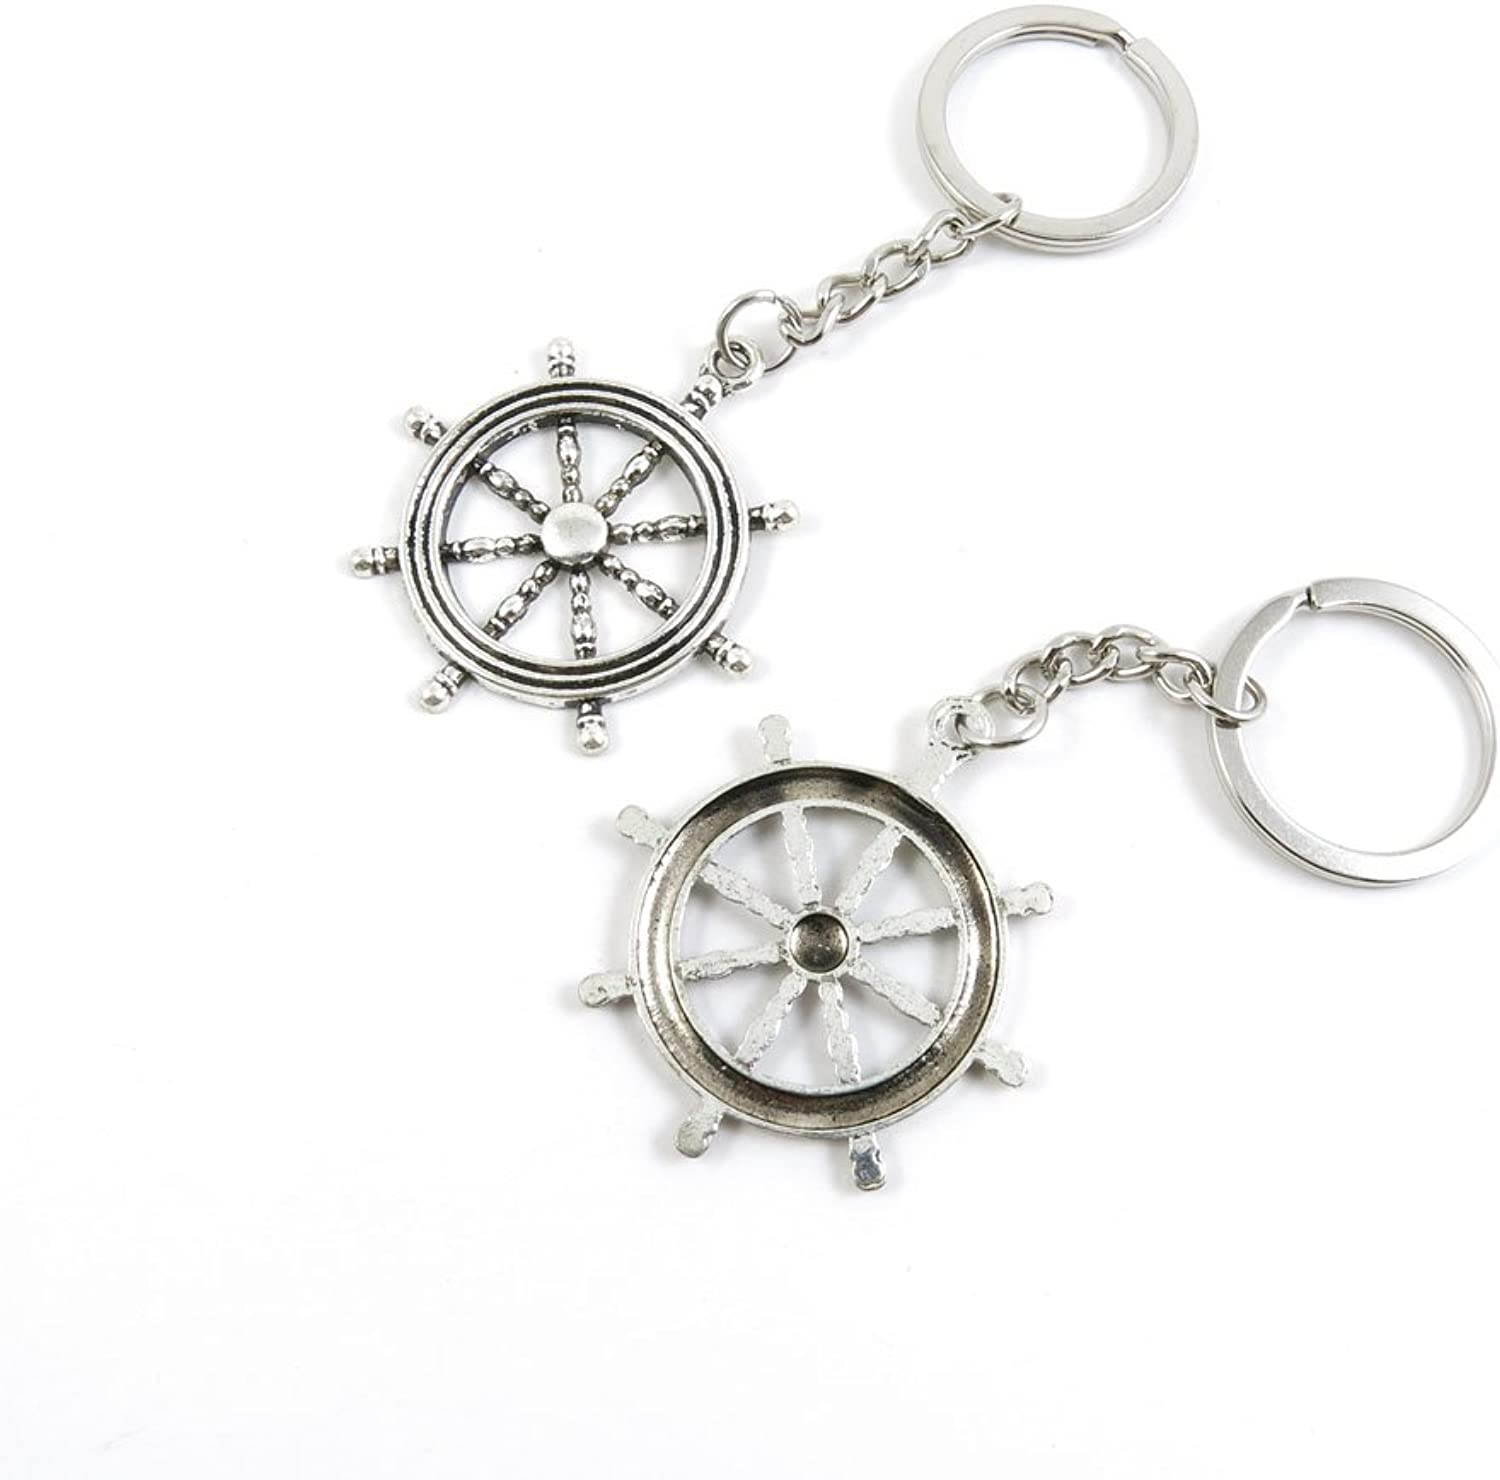 50 Pieces Keychain Keyring Door Car Key Chain Ring Tag Charms Bulk Supply Jewelry Making Clasp Findings K8WW2G Rudder